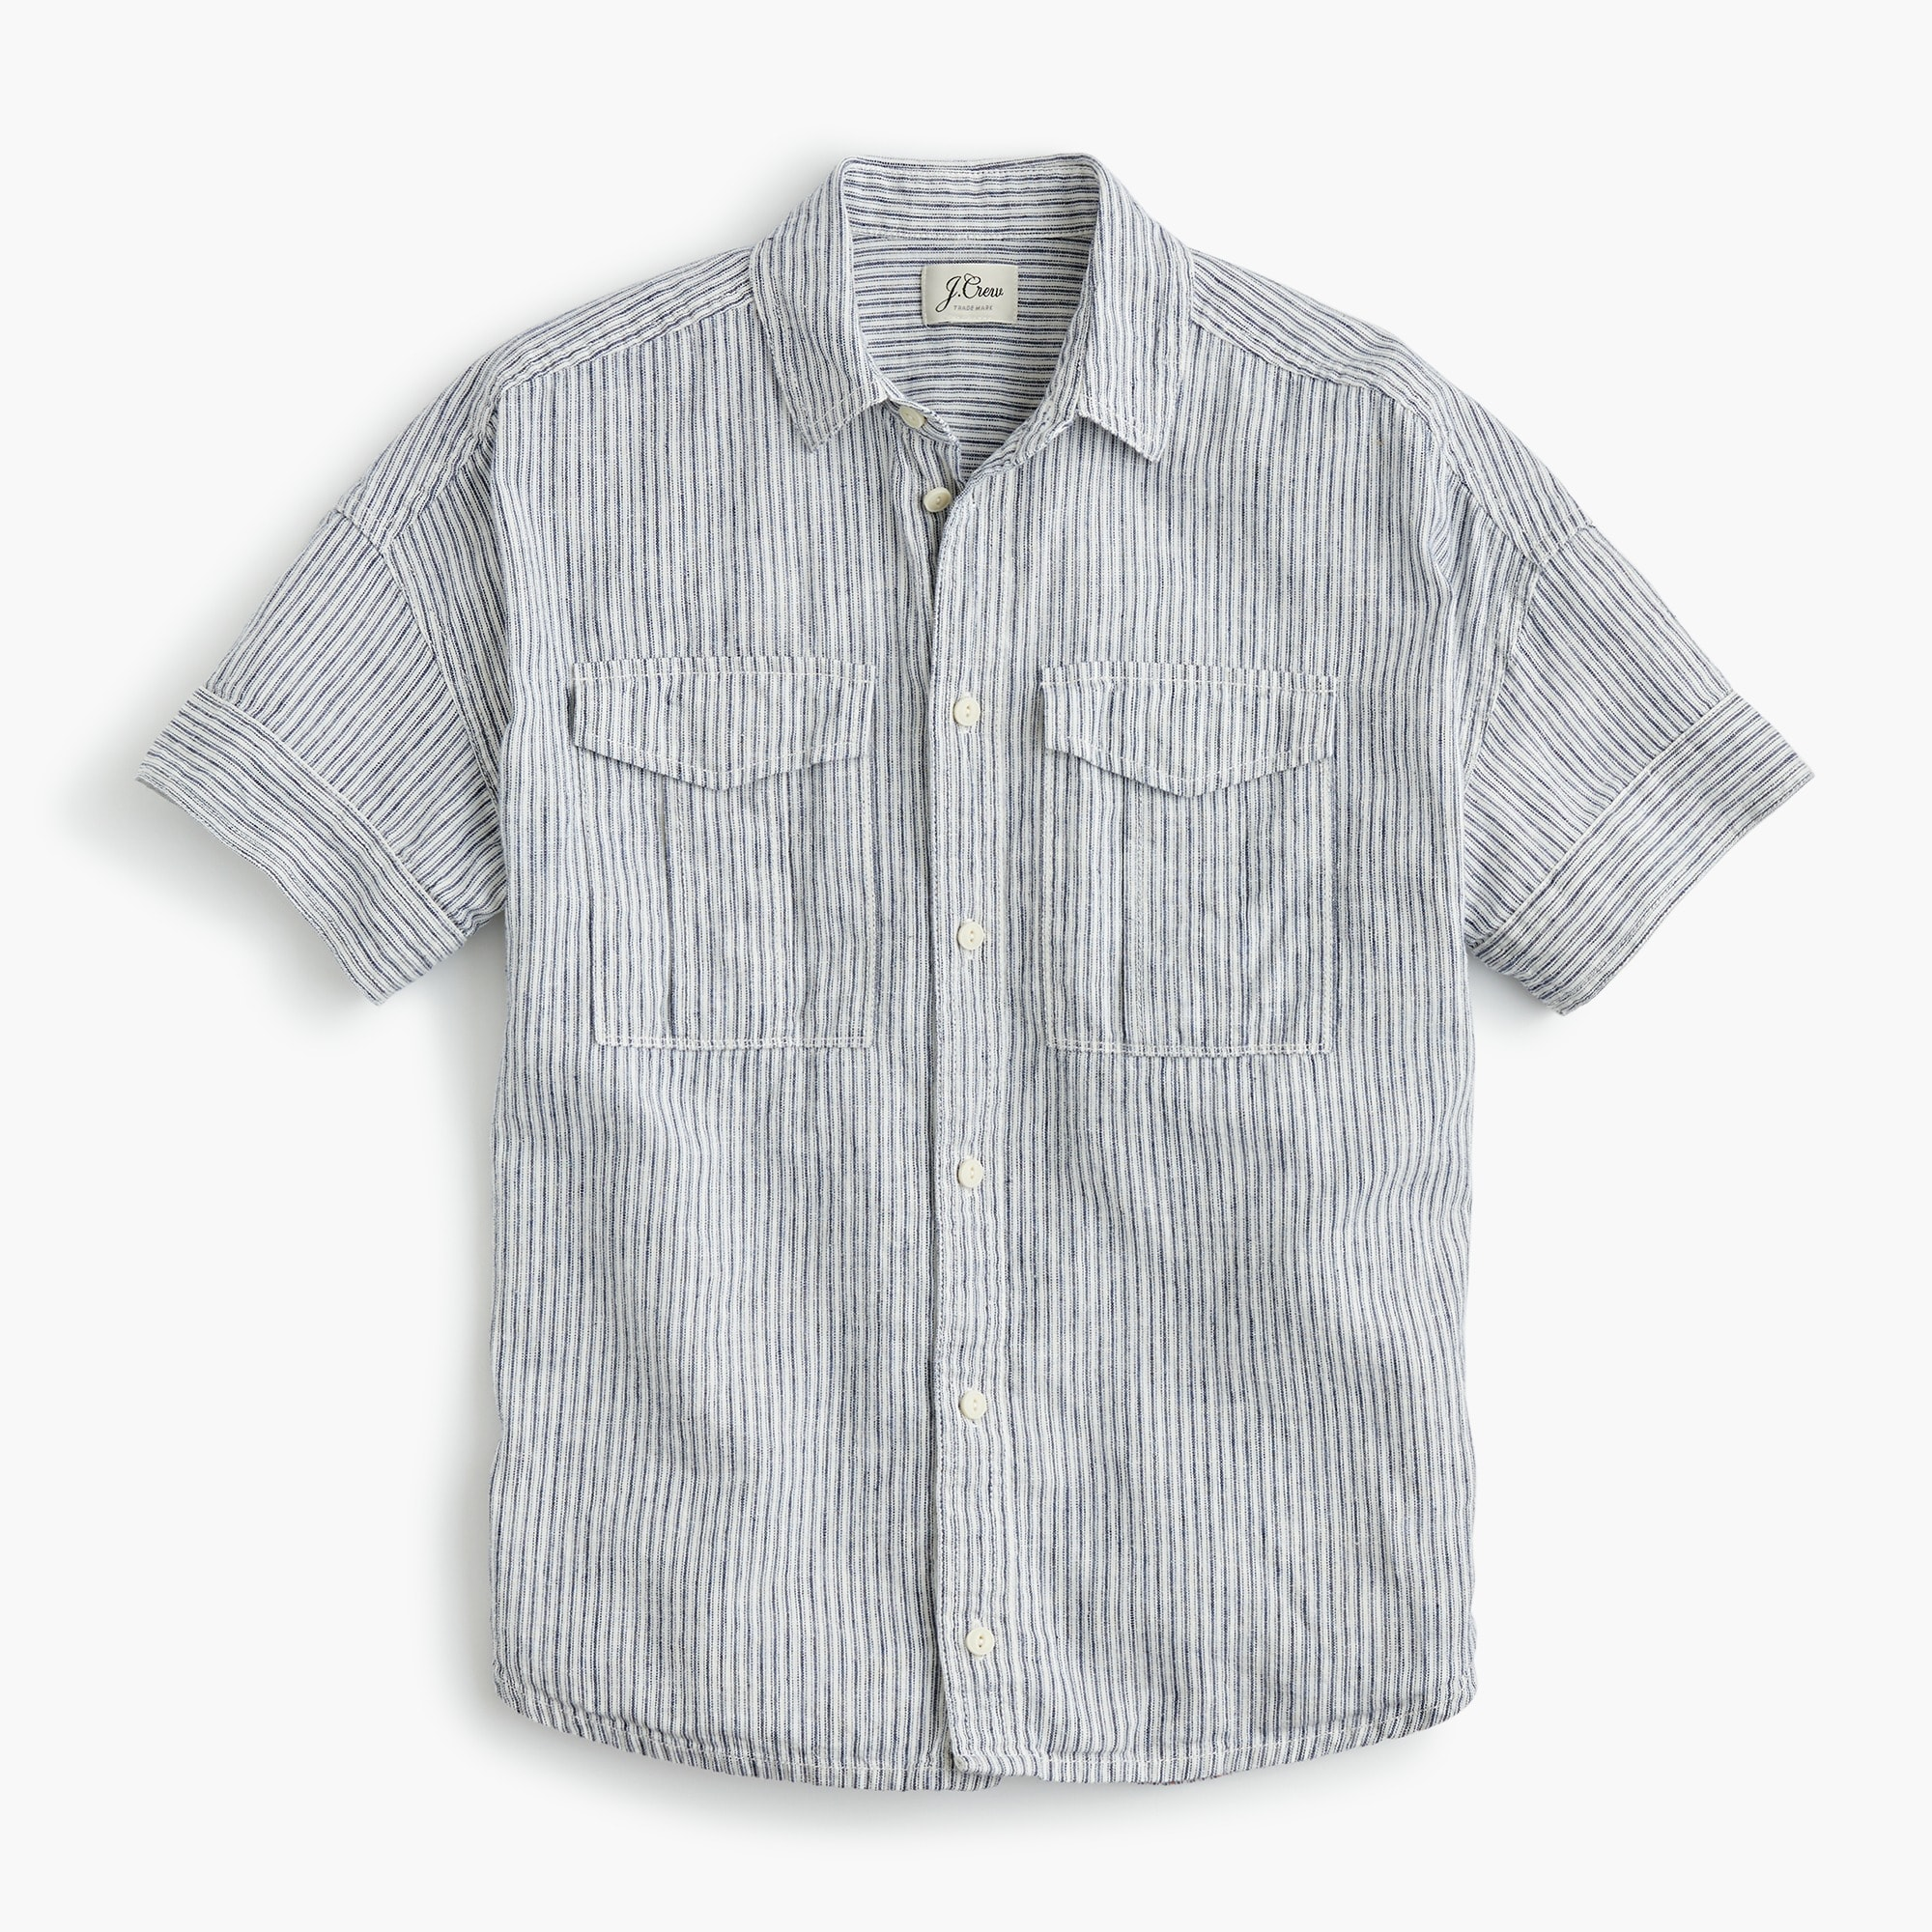 Image 2 for Utility pocket shirt in chambray stripe